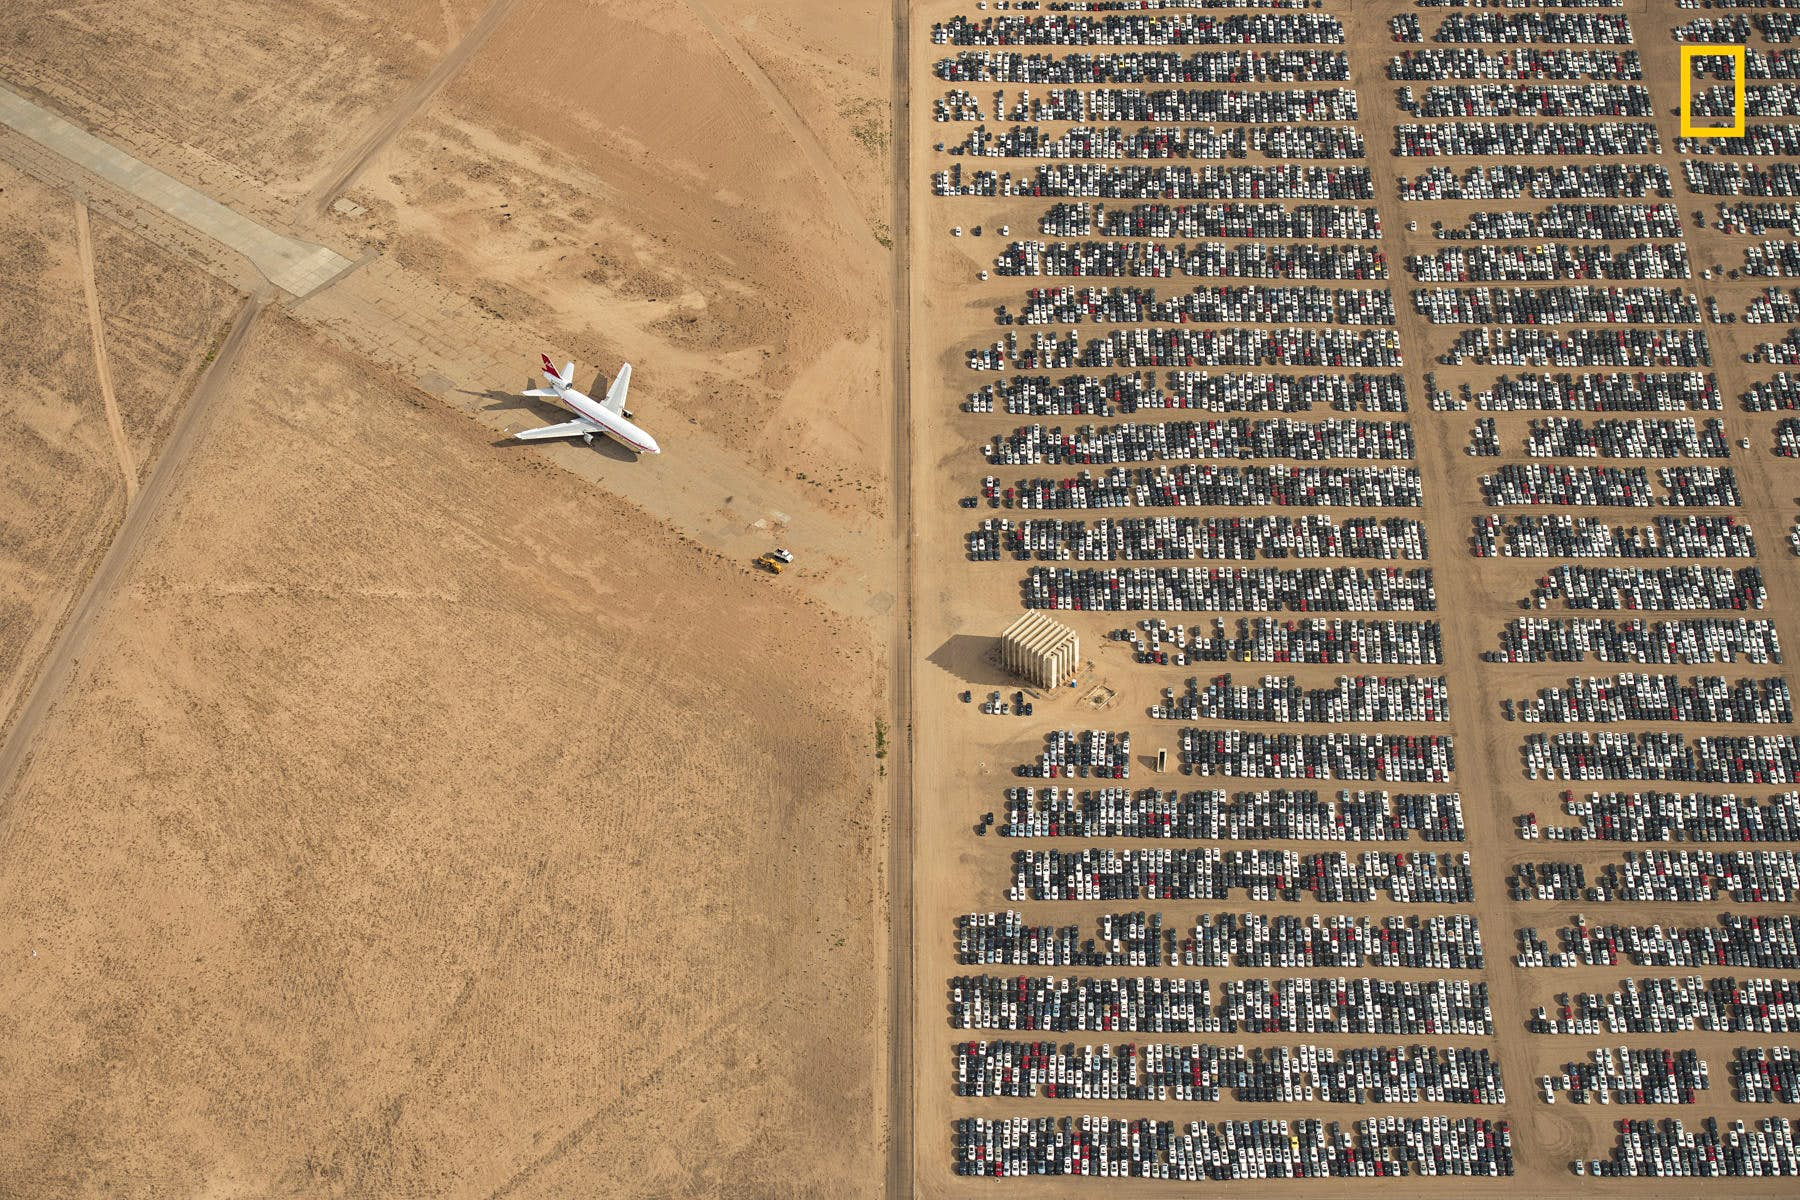 """The Grand Prize and first place in the Places category went to Jassen Todorov for his picture of thousands of Volkswagen and Audi cars sitting in the middle of the Mojave desert in California. These cars were recalled for trying to cheat US environmental tests. Todorov says that he hopes """"we will all become more conscious of and more caring towards our bautiful planet"""" also by looking at scenes like this one. Image courtesy of Jassen Todorov/2018 National Geographic Photo Contest"""